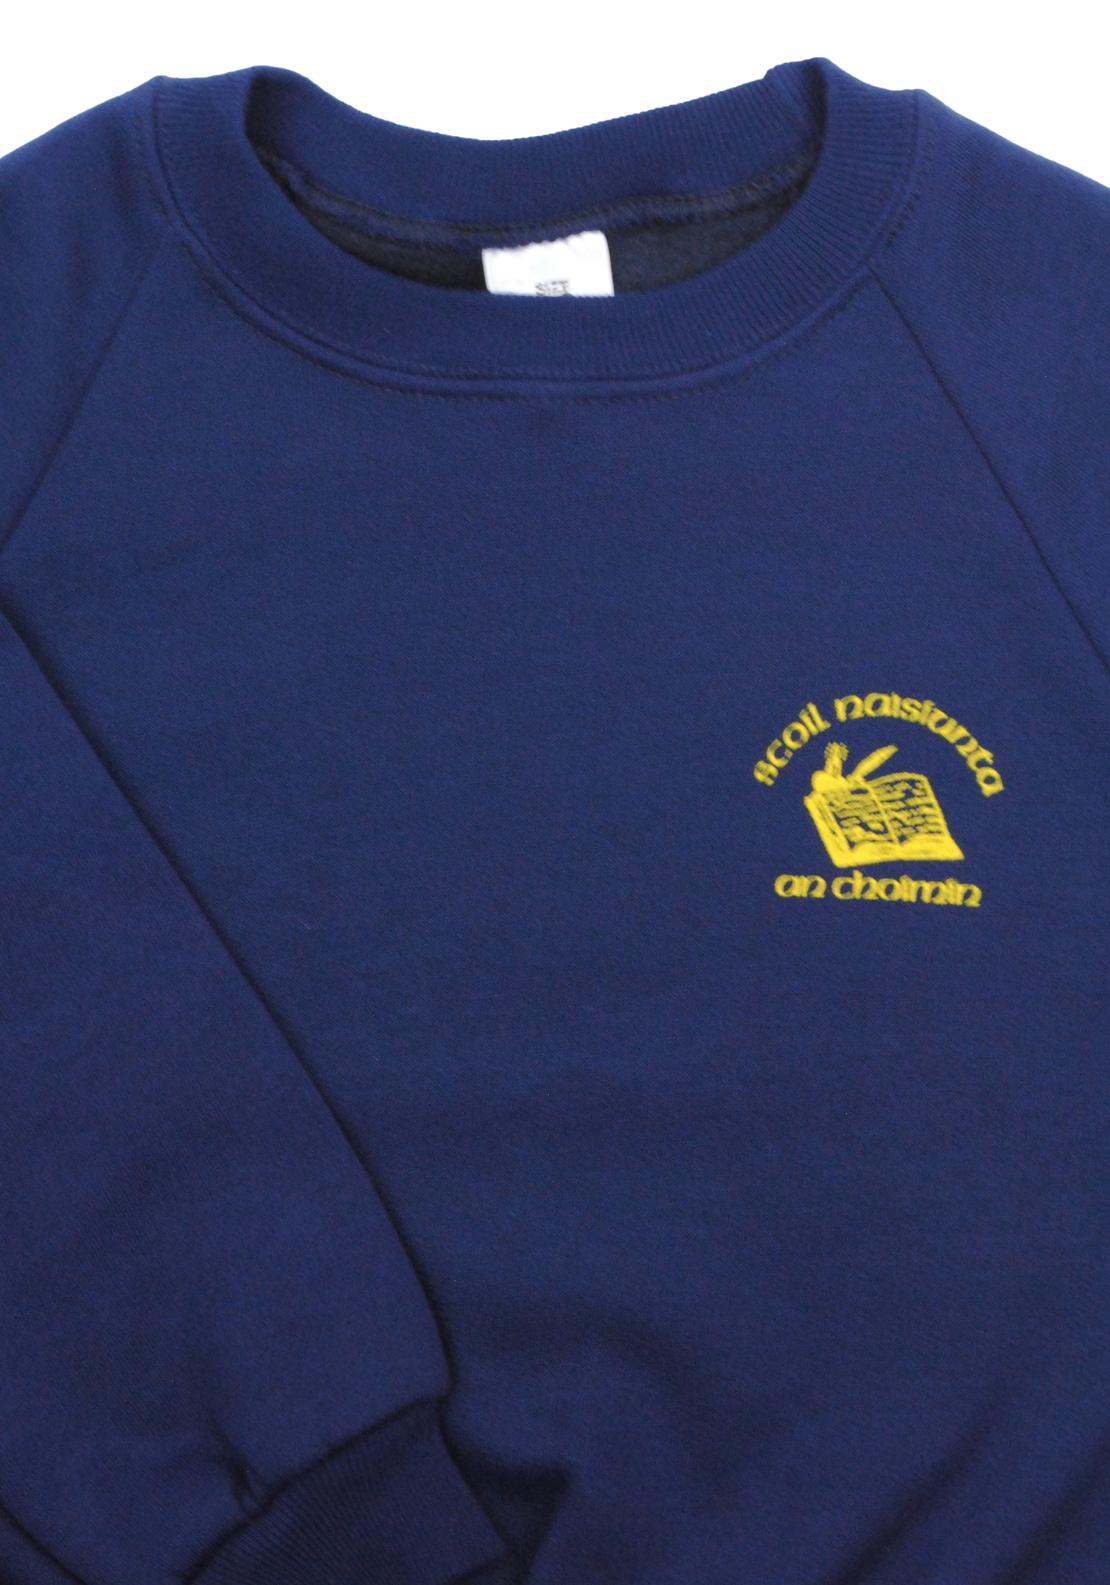 Scoil Naisiunta An Choimín School Jumper, Navy